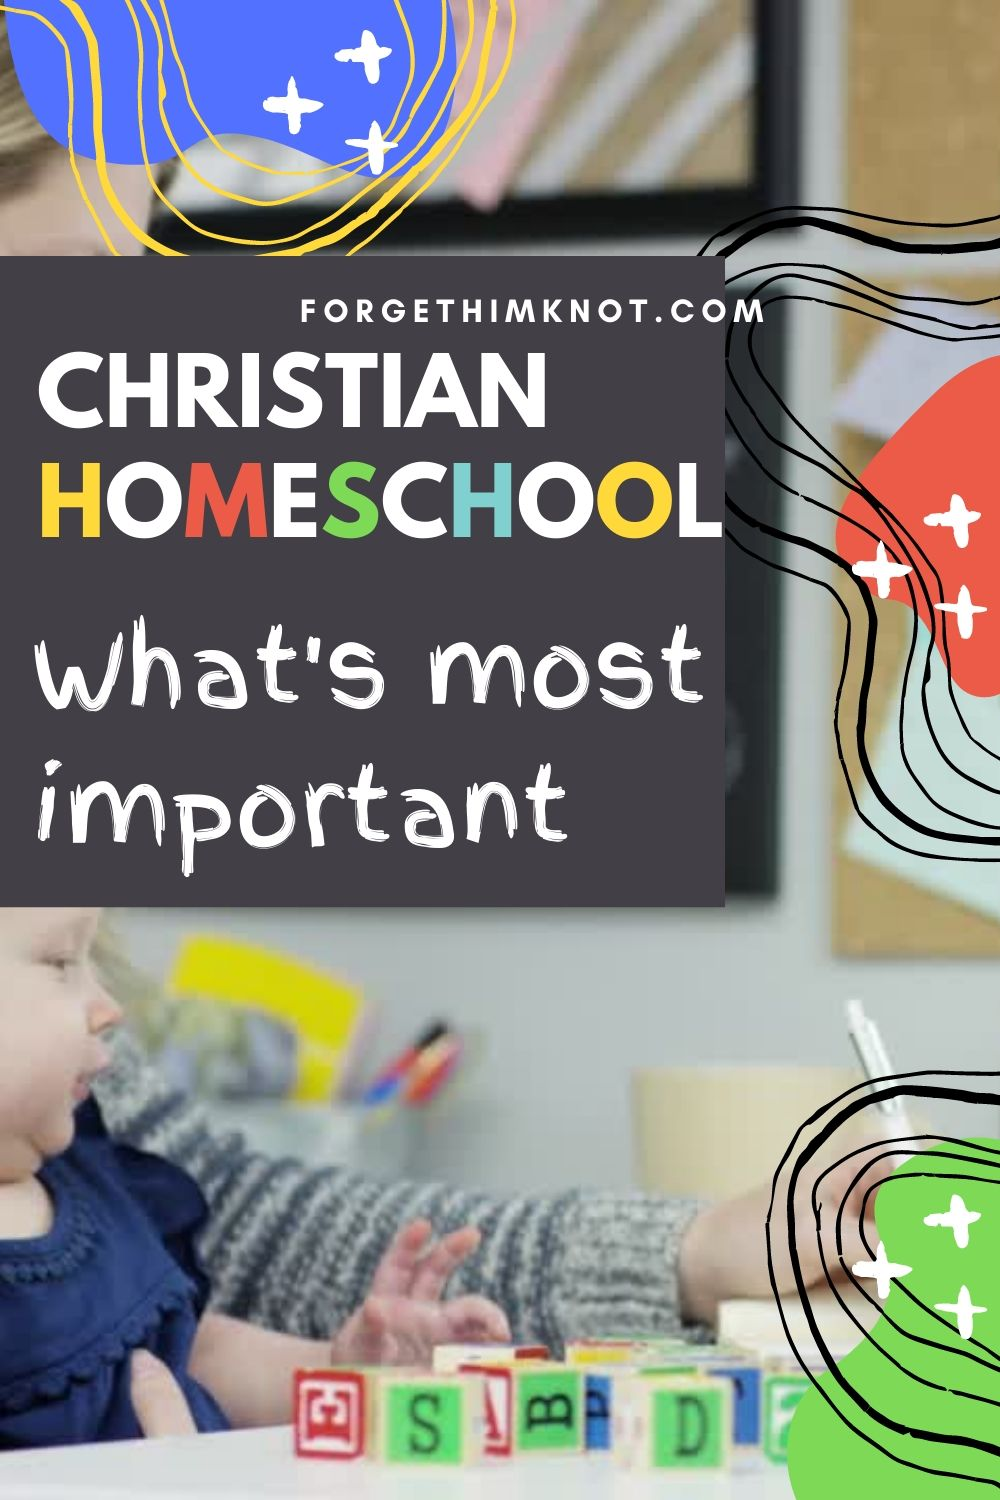 Christian homeschool tips about what matters most